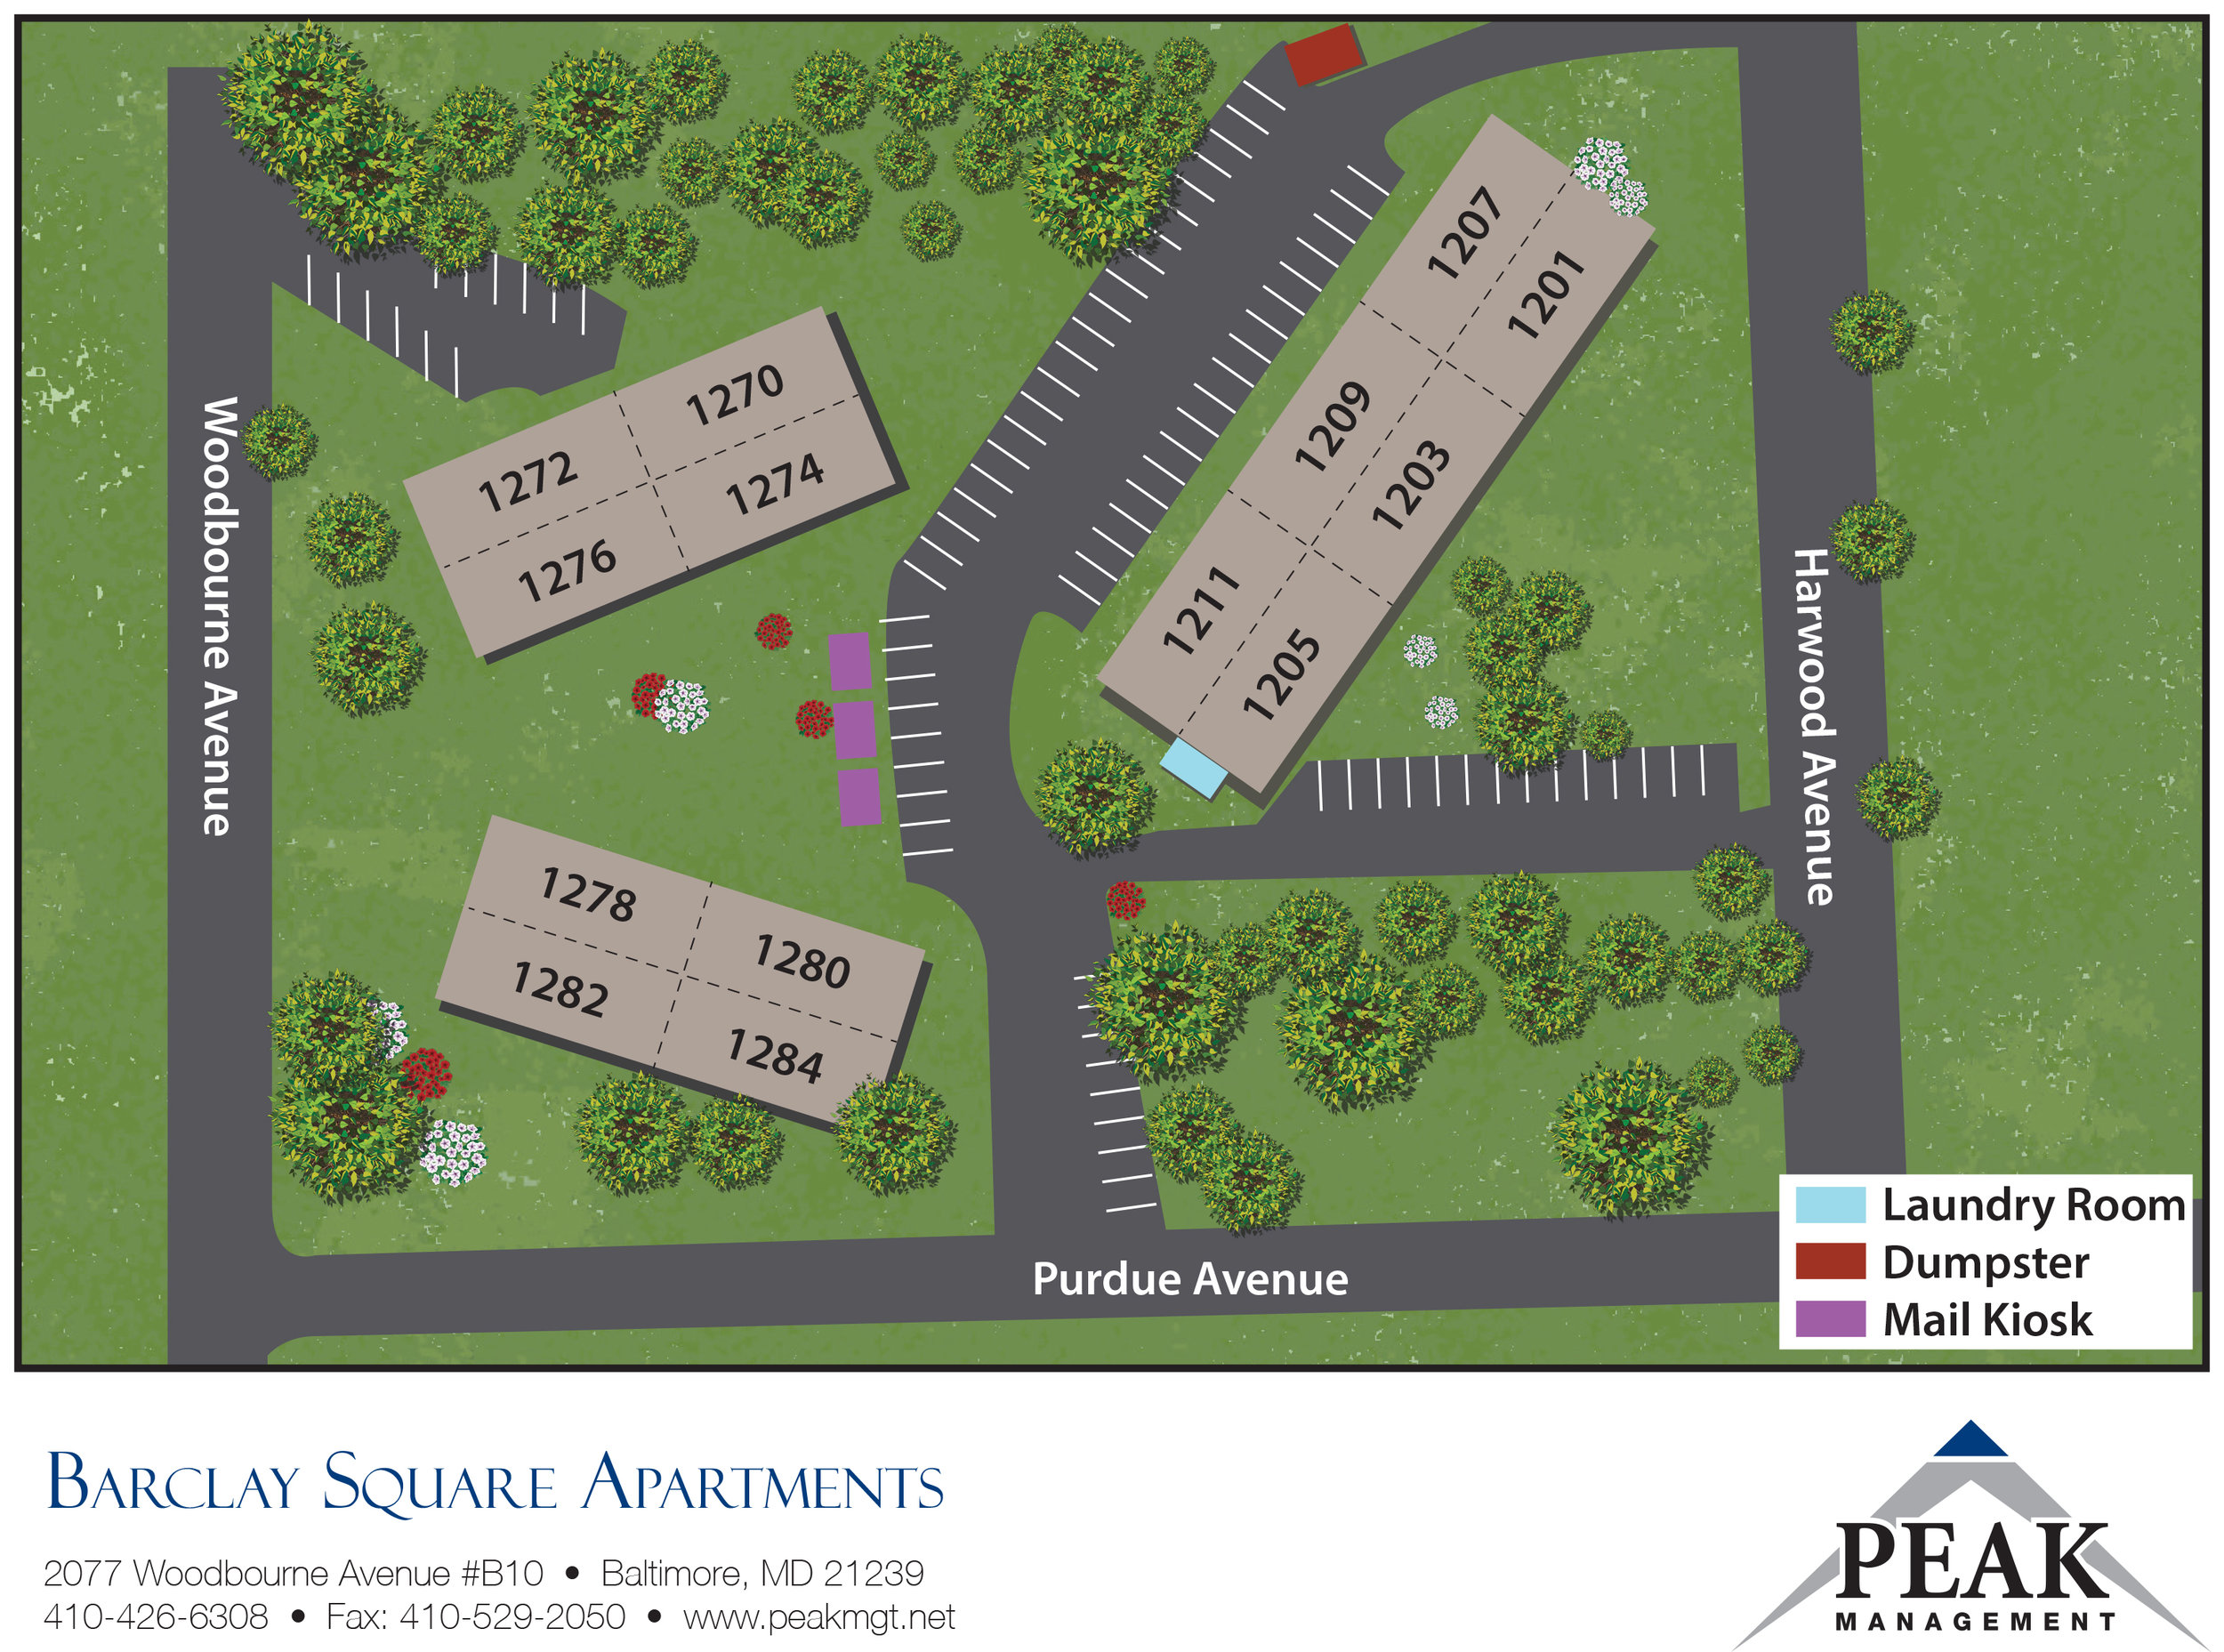 Barclay Square Apartments | Baltimore, MD - Site Map